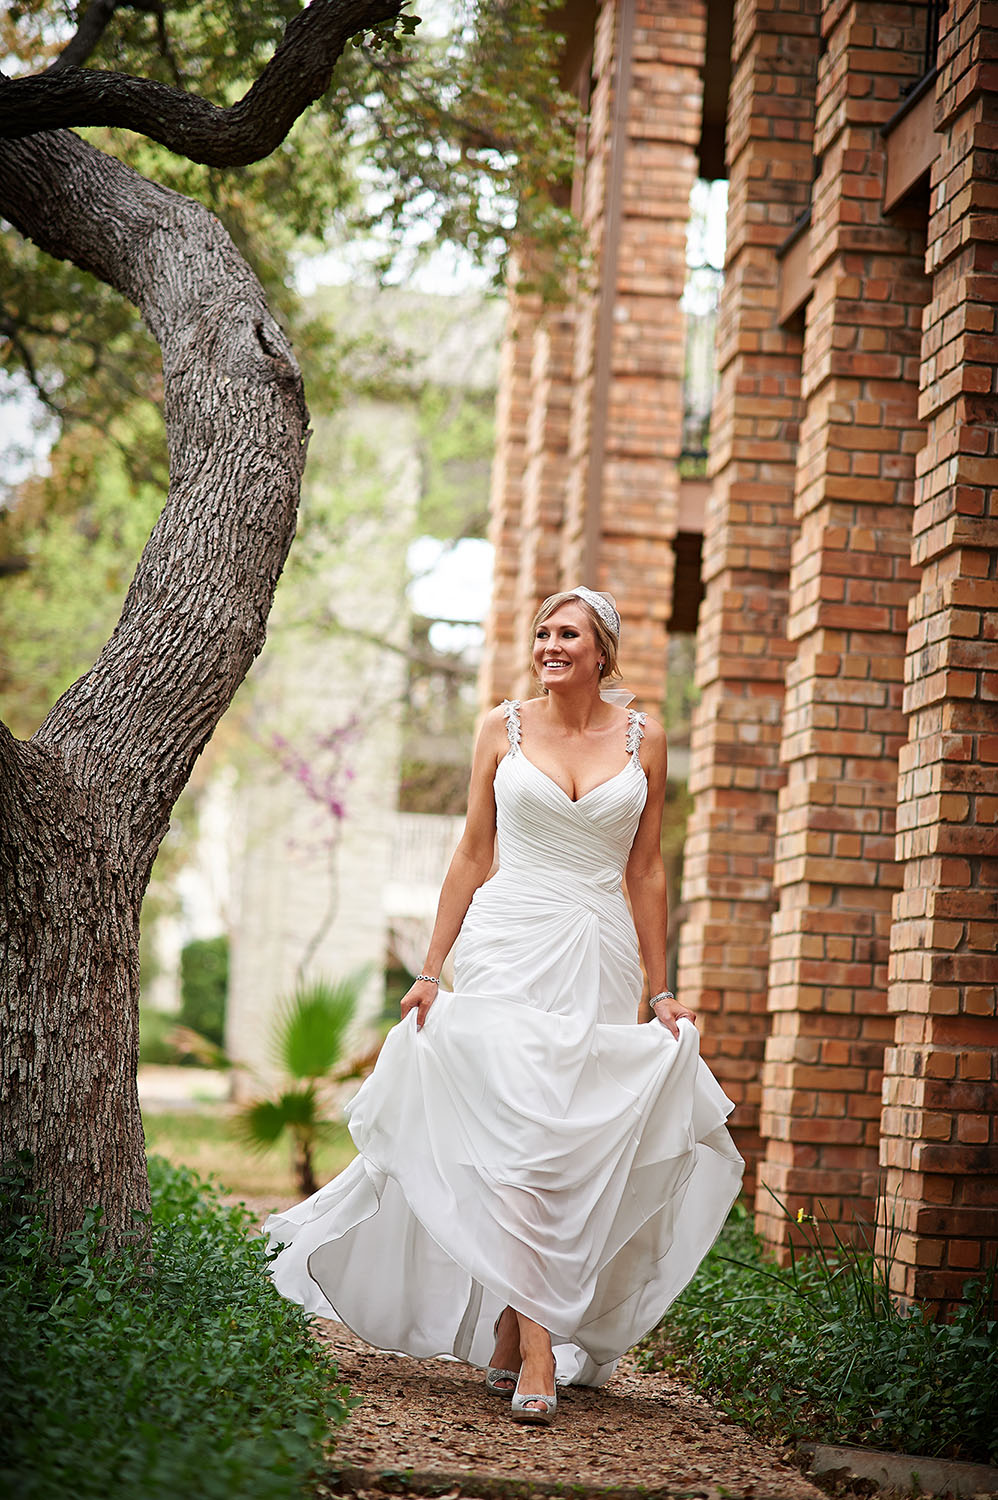 Having bridal photos in your photography package is also a good idea. You won't need to take a lot of time during the wedding day just for bridals and you can use that time to have fun.